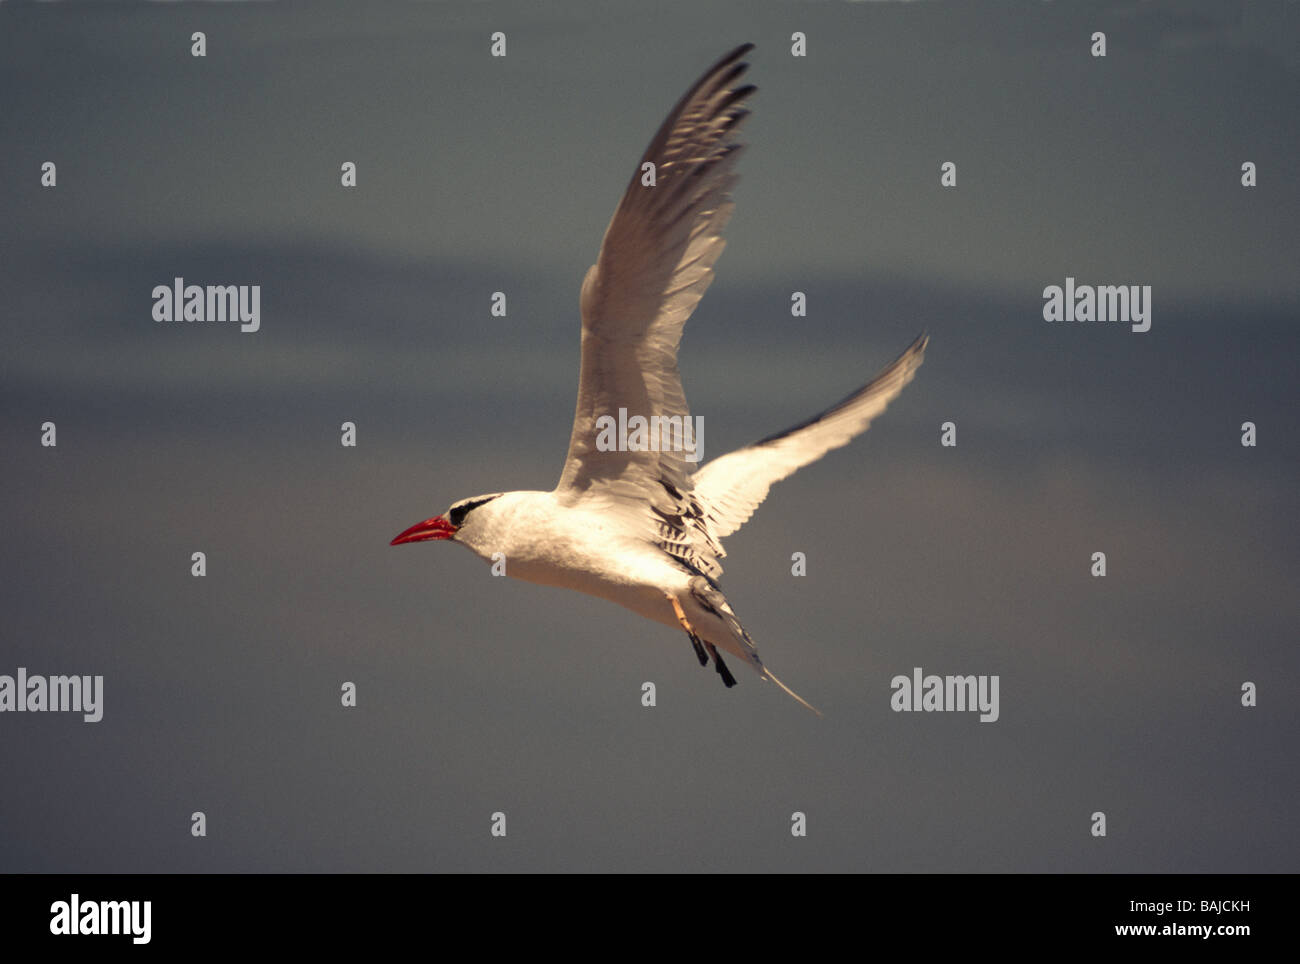 Galapagos Islands. Red-billed Tropicbird 'Phaethon aethreus' Adult in flight. - Stock Image